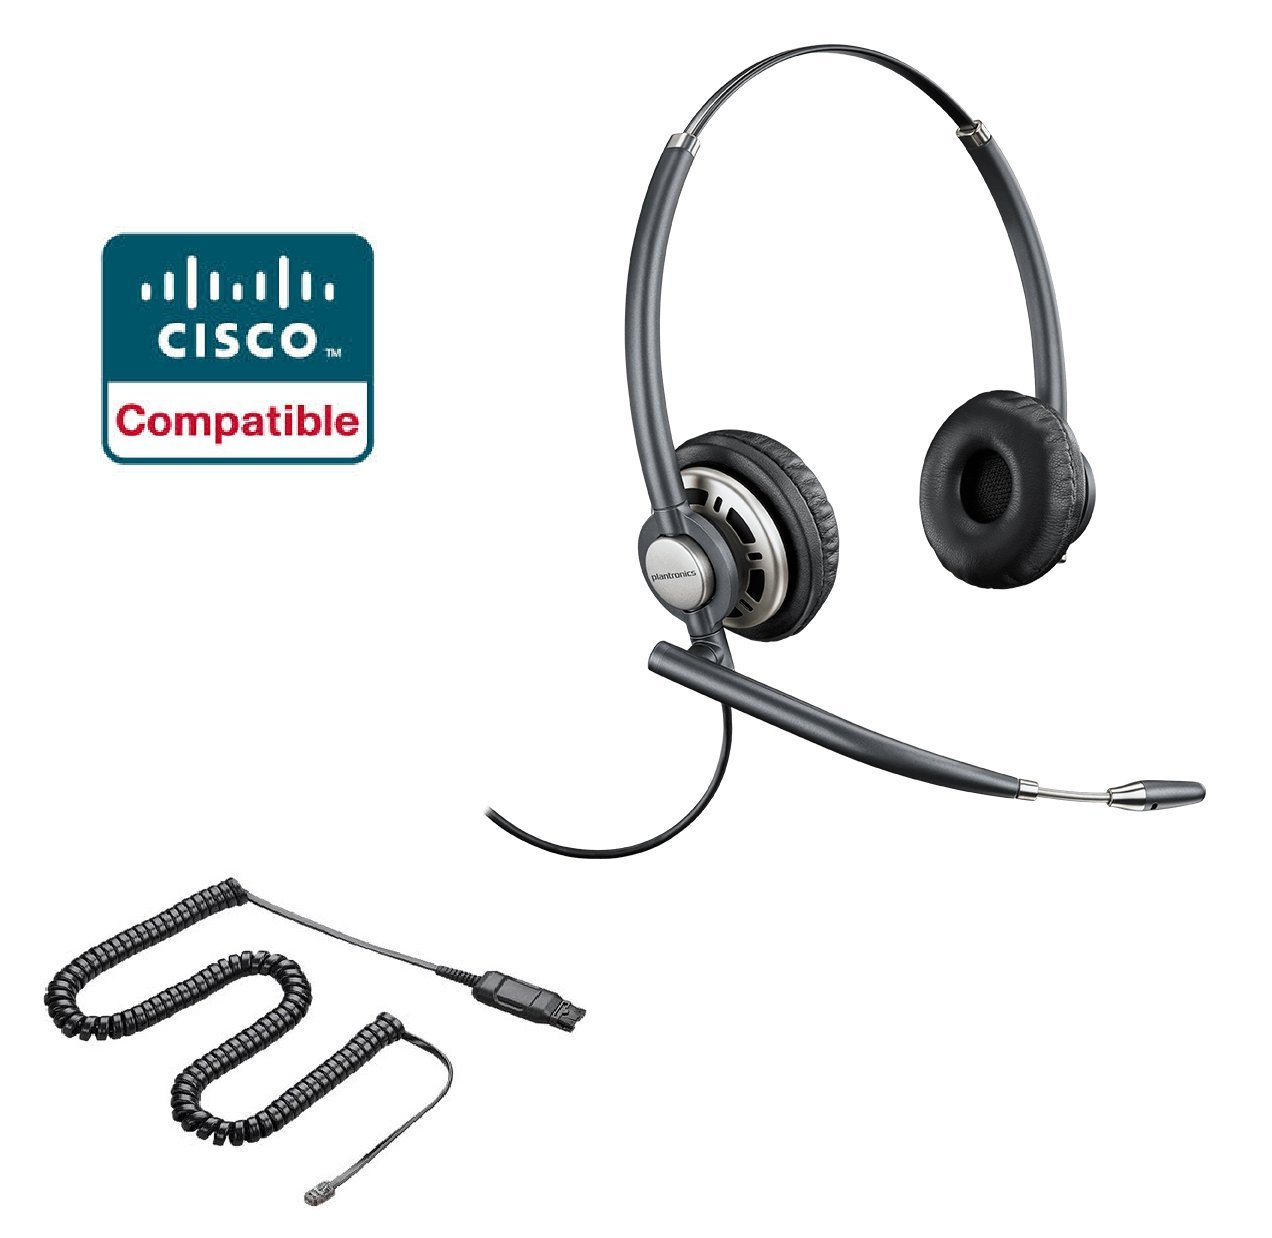 Cisco Compatible Plantronics EncorePro 720 HW720 Noise Canceling Direct Connect VoIP Headset Bundle Cisco 69xx, 78xx, 79xx, 89xx, 99xx Series Phone by Plantronics